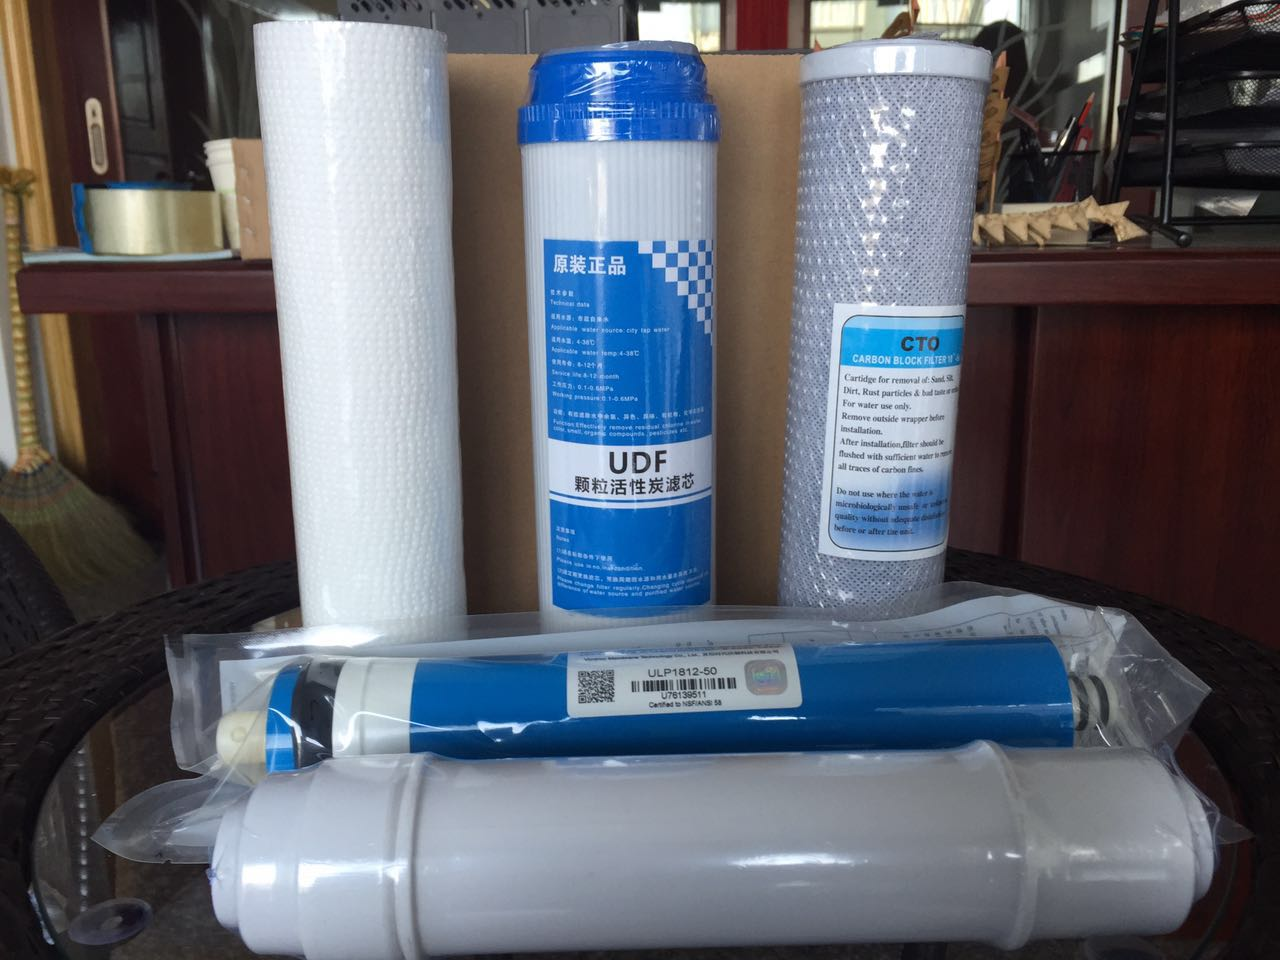 Bentai pentair HERKUNFT Water Bo quan Bin Lang 宝净 quelle Bontemps wasserfilter General Filter!!!!!!!